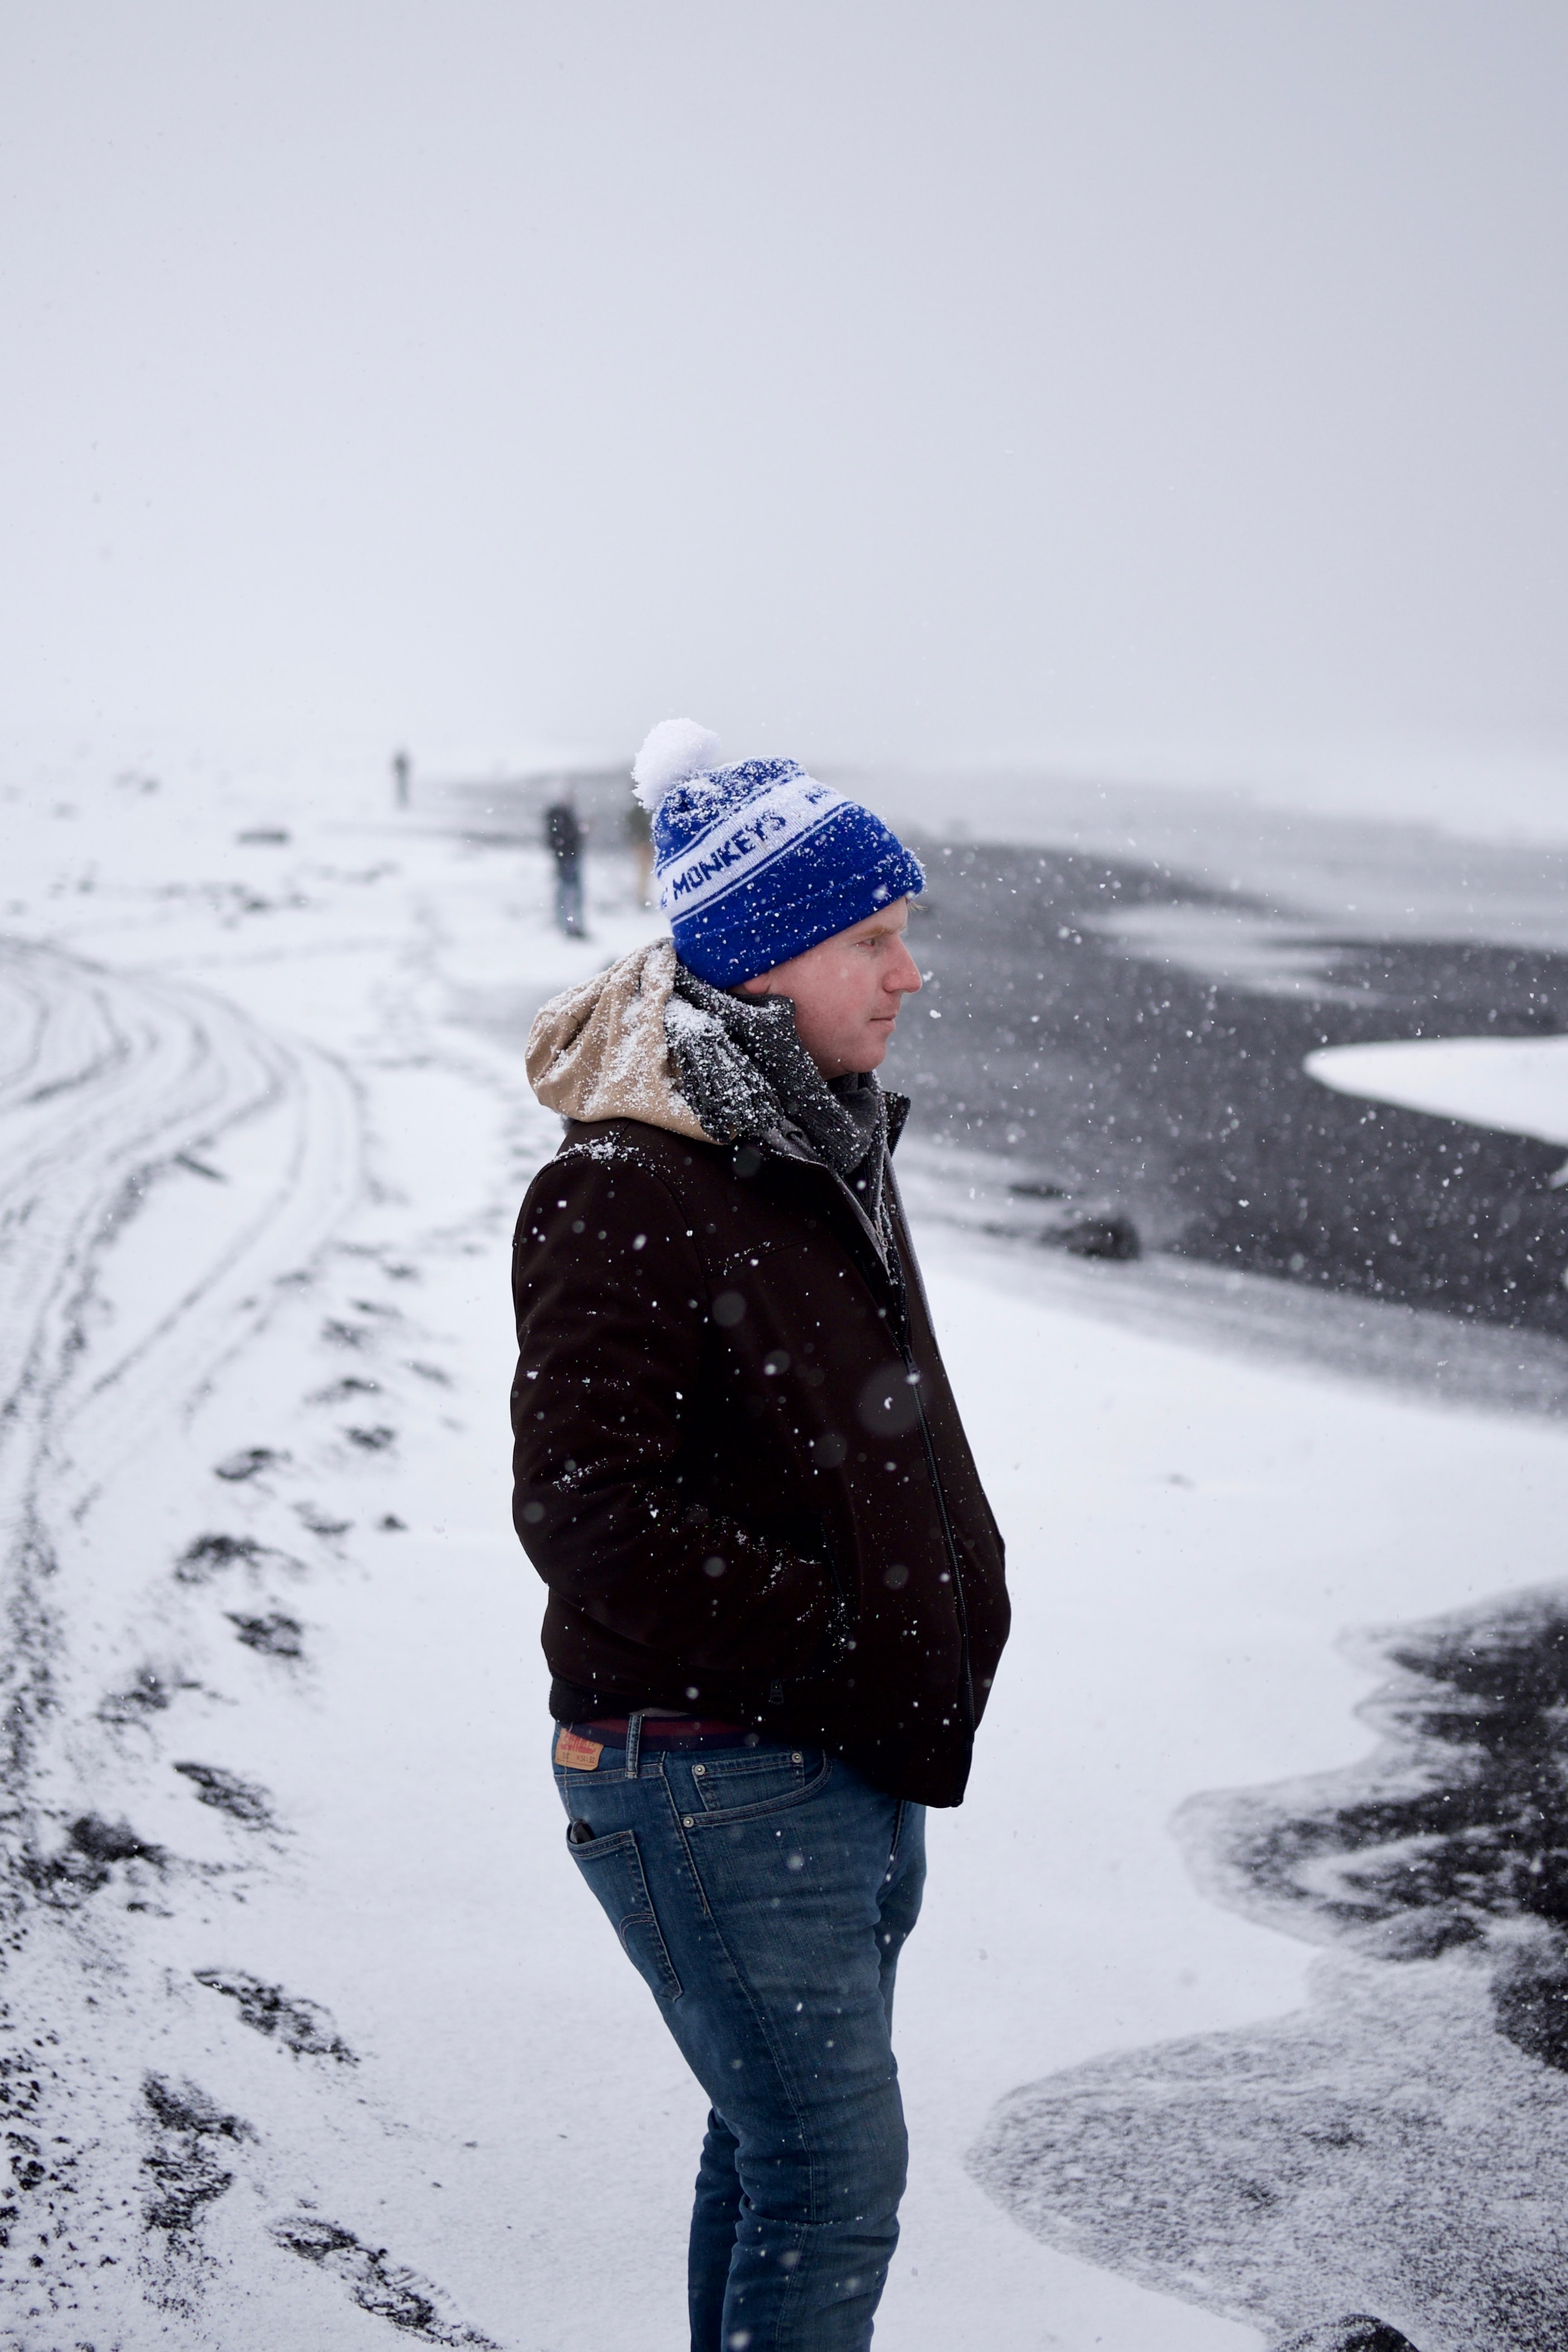 man standing on snow during winter